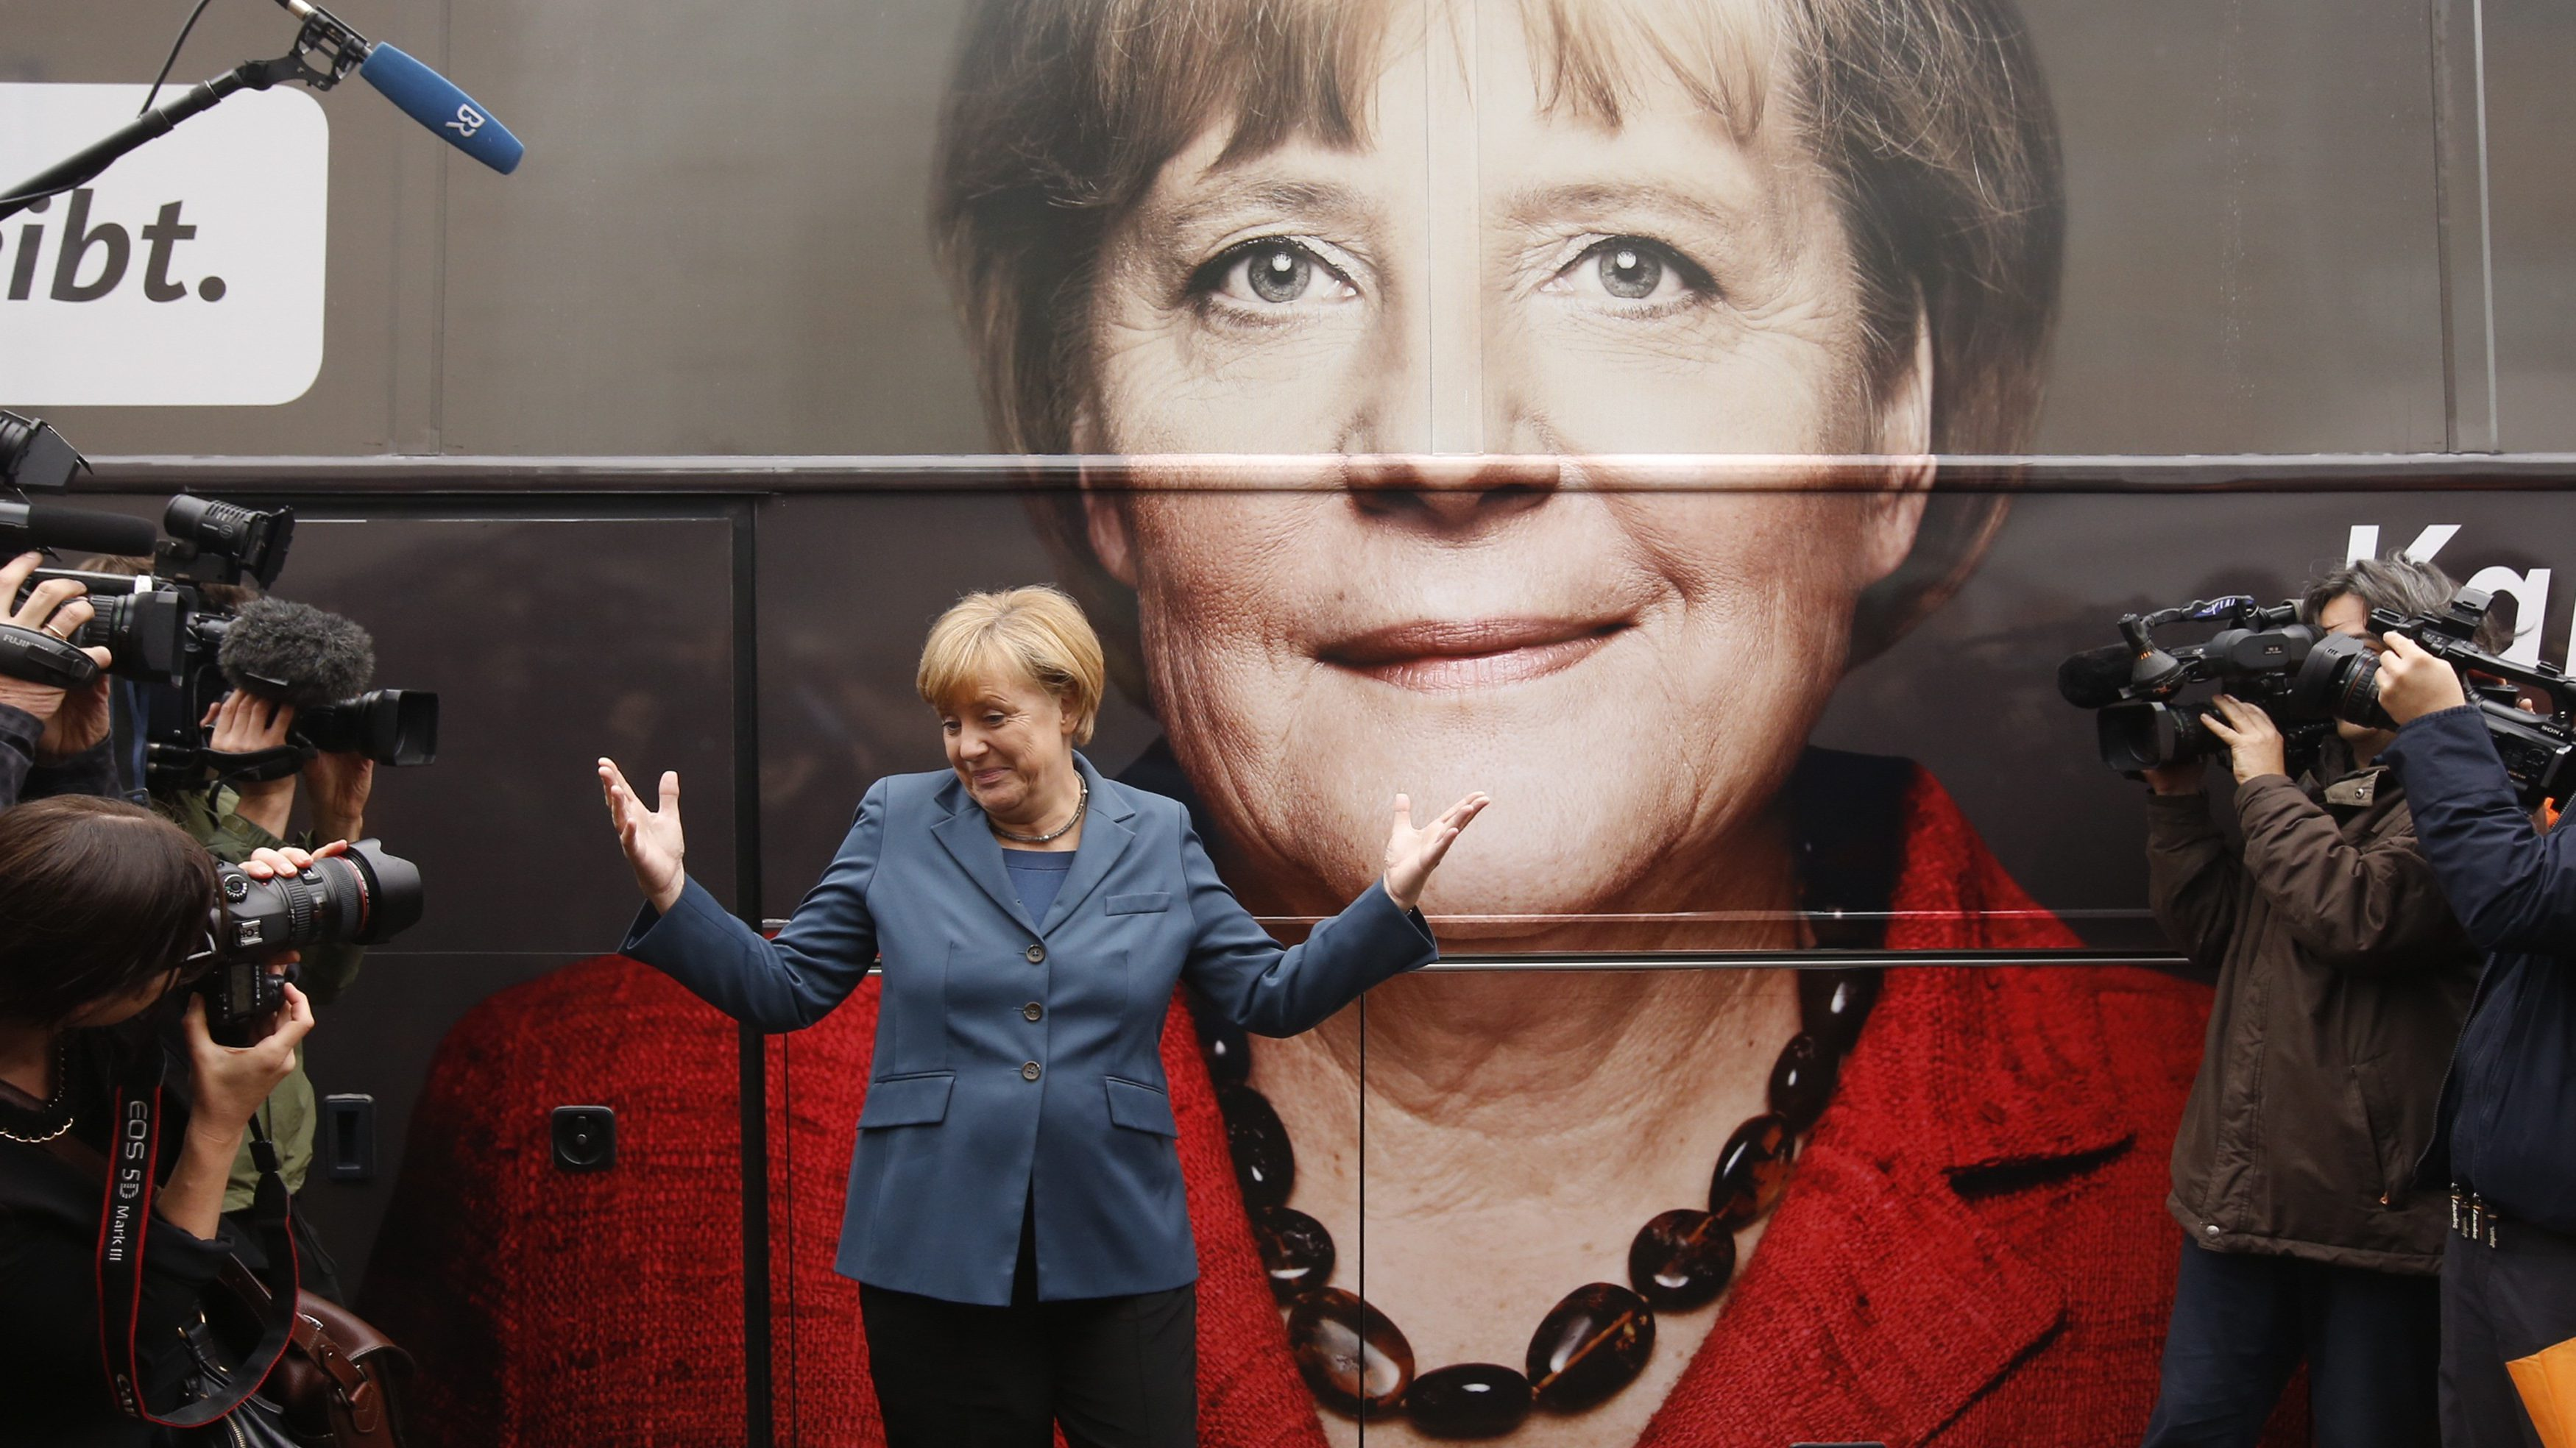 German Chancellor Merkel and leader of the CDU party stands in front of her election campaign tour bus at the CDU's headquarters in Berlin